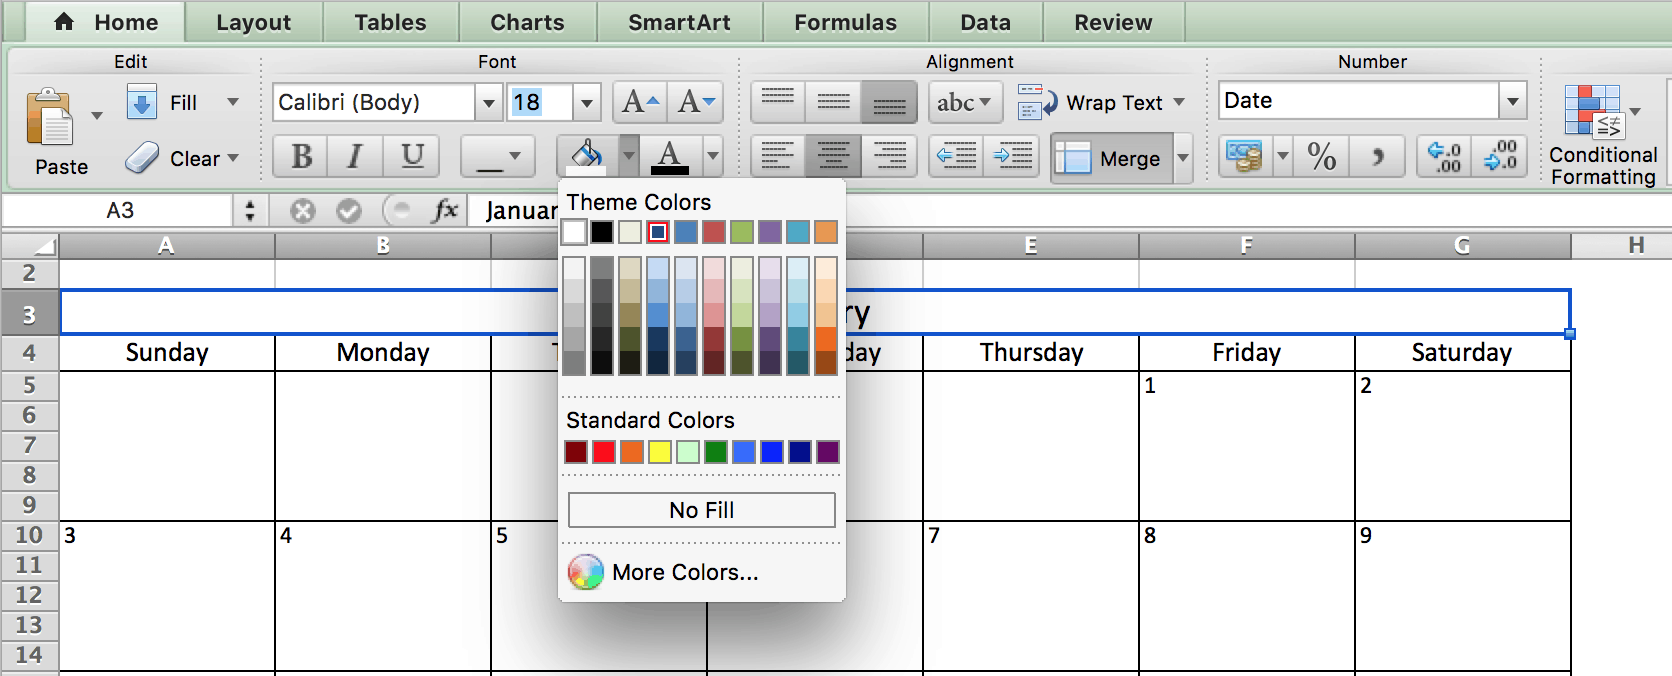 Ediblewildsus  Fascinating Make A  Calendar In Excel Includes Free Template With Lovely Choosing Colors  Calendar In Excel With Extraordinary Read Only Excel File Also Php Excel Writer In Addition How To Use If Then Statements In Excel And Content Calendar Template Excel As Well As Microsoft Excel Mac Torrent Additionally Box And Whisker In Excel From Smartsheetcom With Ediblewildsus  Lovely Make A  Calendar In Excel Includes Free Template With Extraordinary Choosing Colors  Calendar In Excel And Fascinating Read Only Excel File Also Php Excel Writer In Addition How To Use If Then Statements In Excel From Smartsheetcom